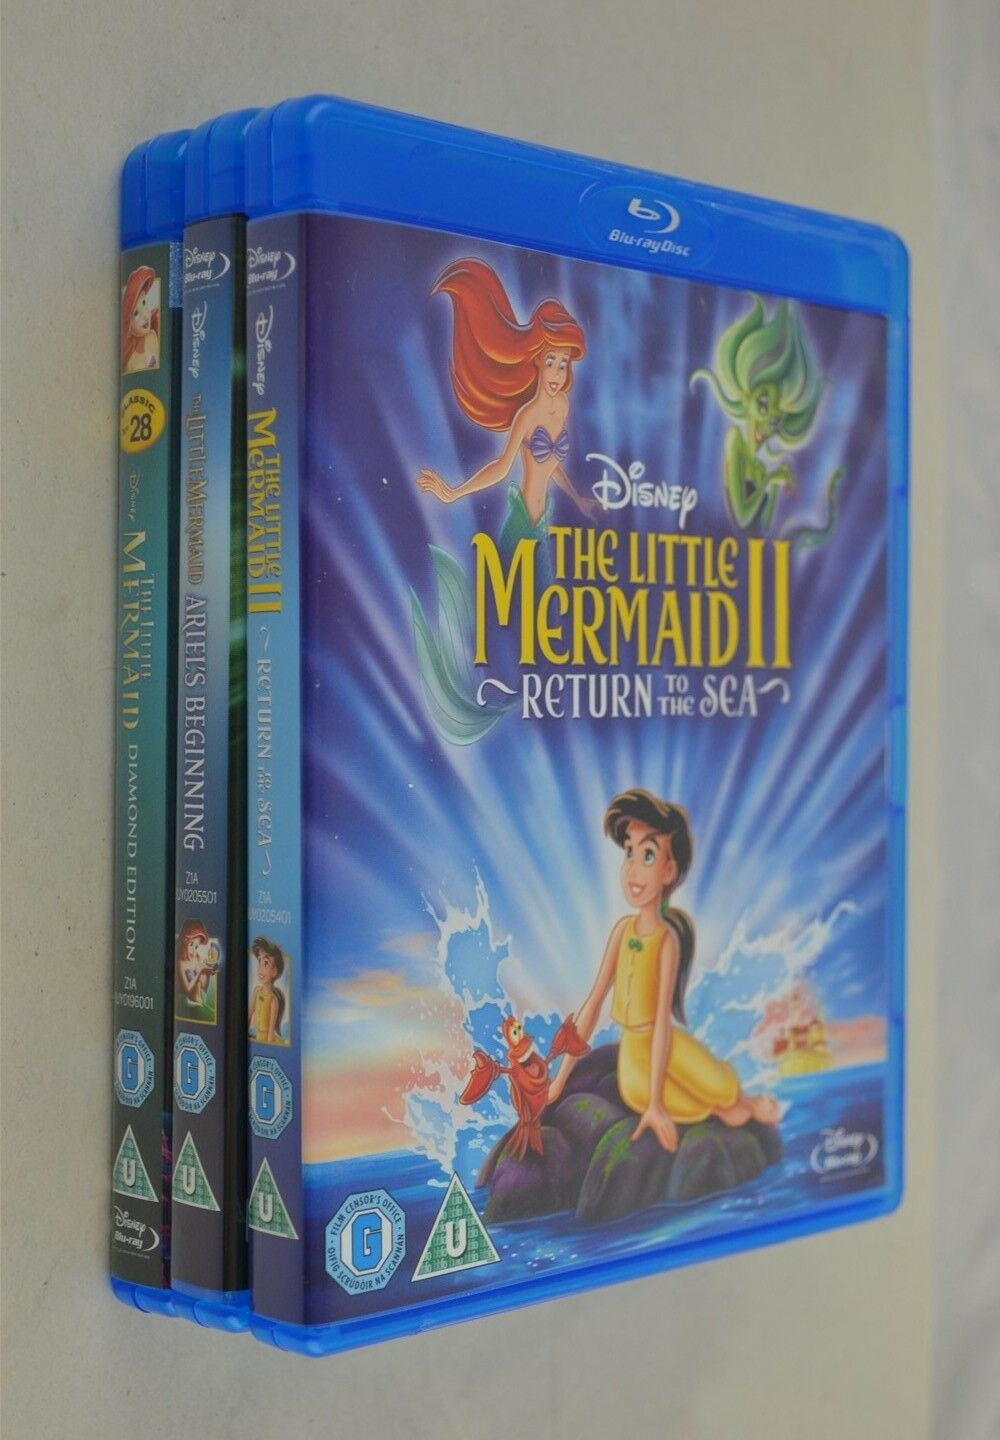 The Little Mermaid 3 Movie Collection [Blu-ray]